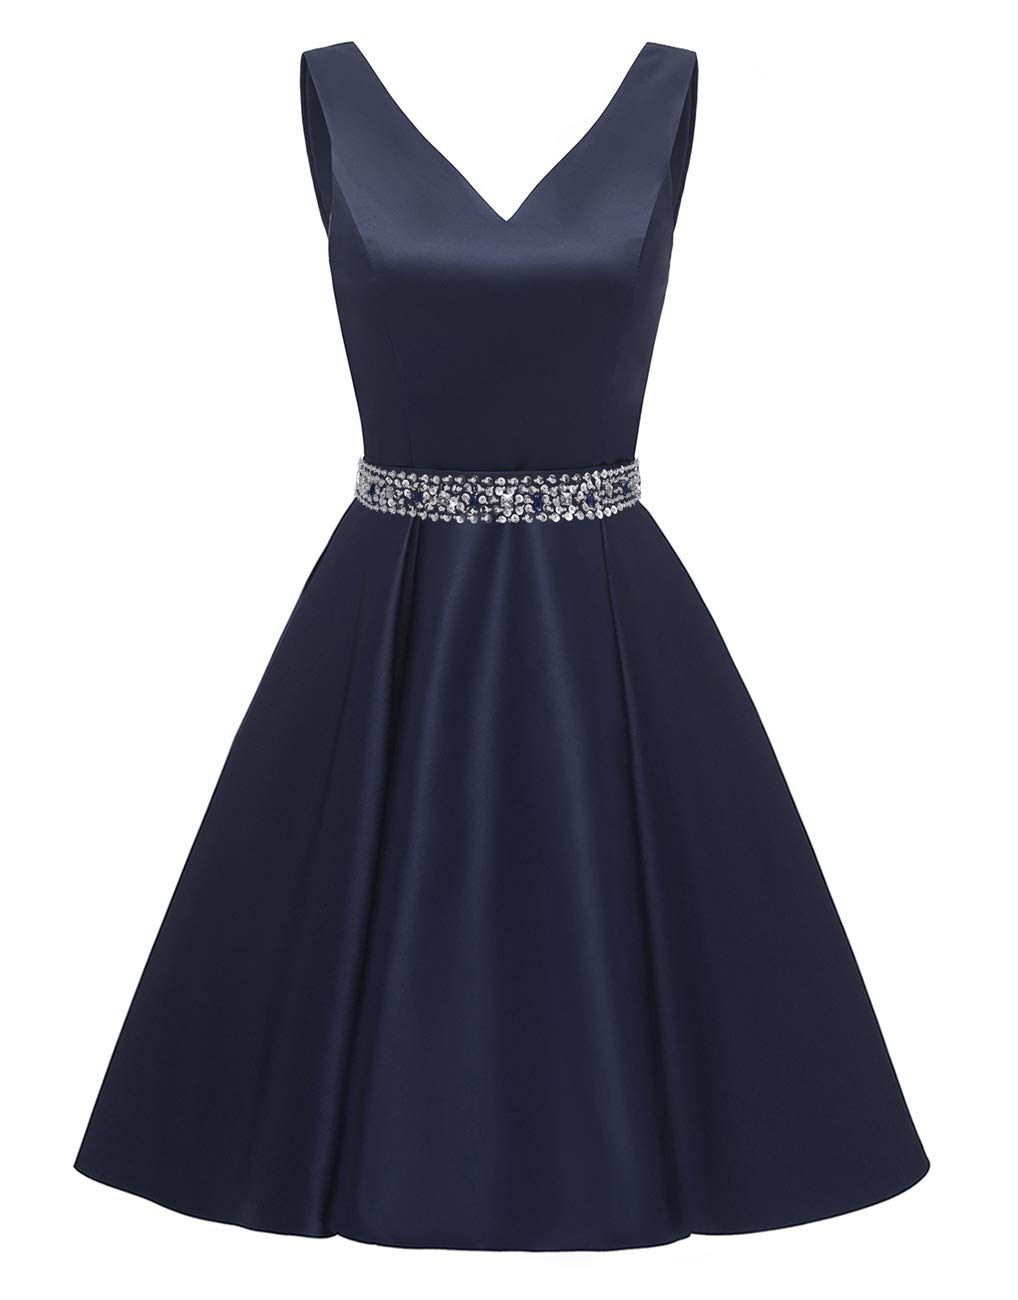 yinyyinhs V Neck Homecoming Dresses Short Satin Beaded Prom Dress Formal Gowns